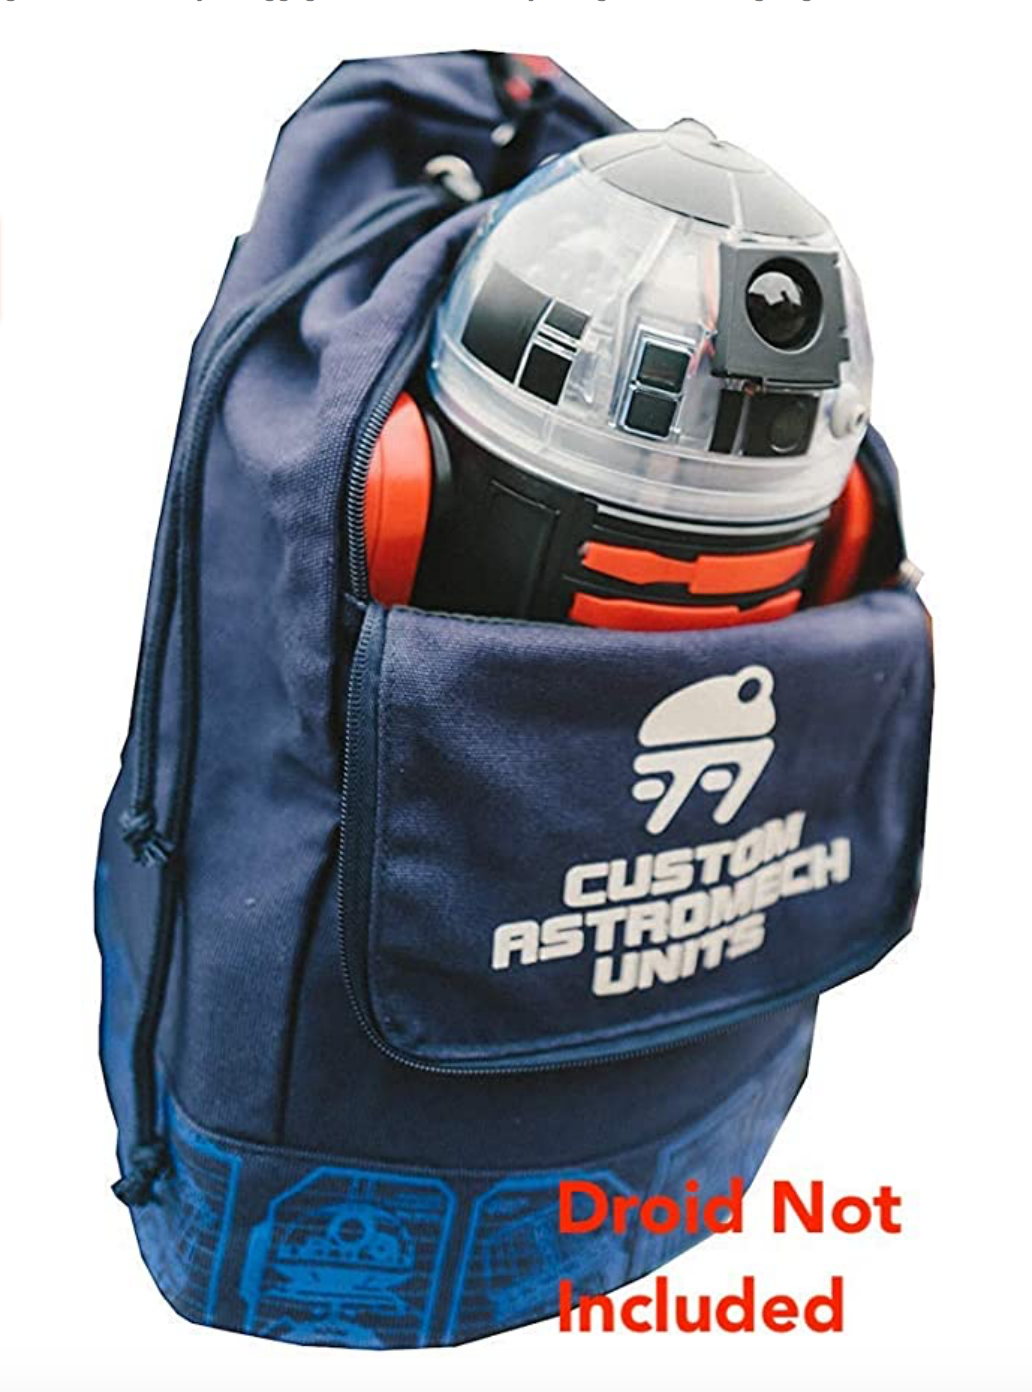 SWGE Droid Depot Industrial Automaton Astromech Carrier Drawstring Backpack 2